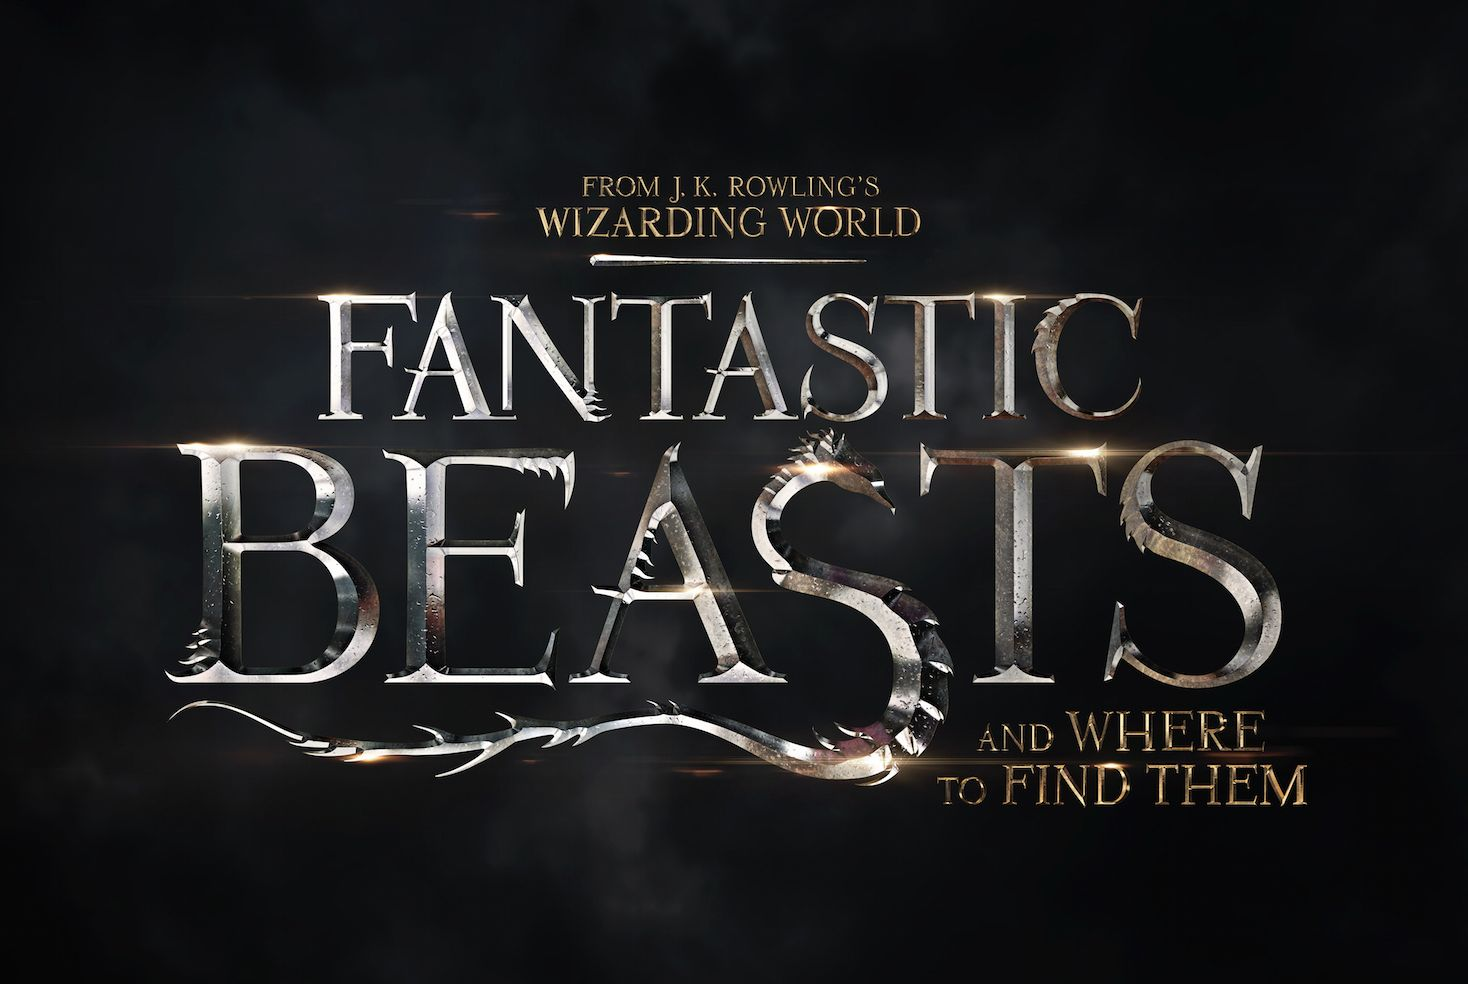 Title Artwork Revealed for Fantastic Beasts and Where to Fin